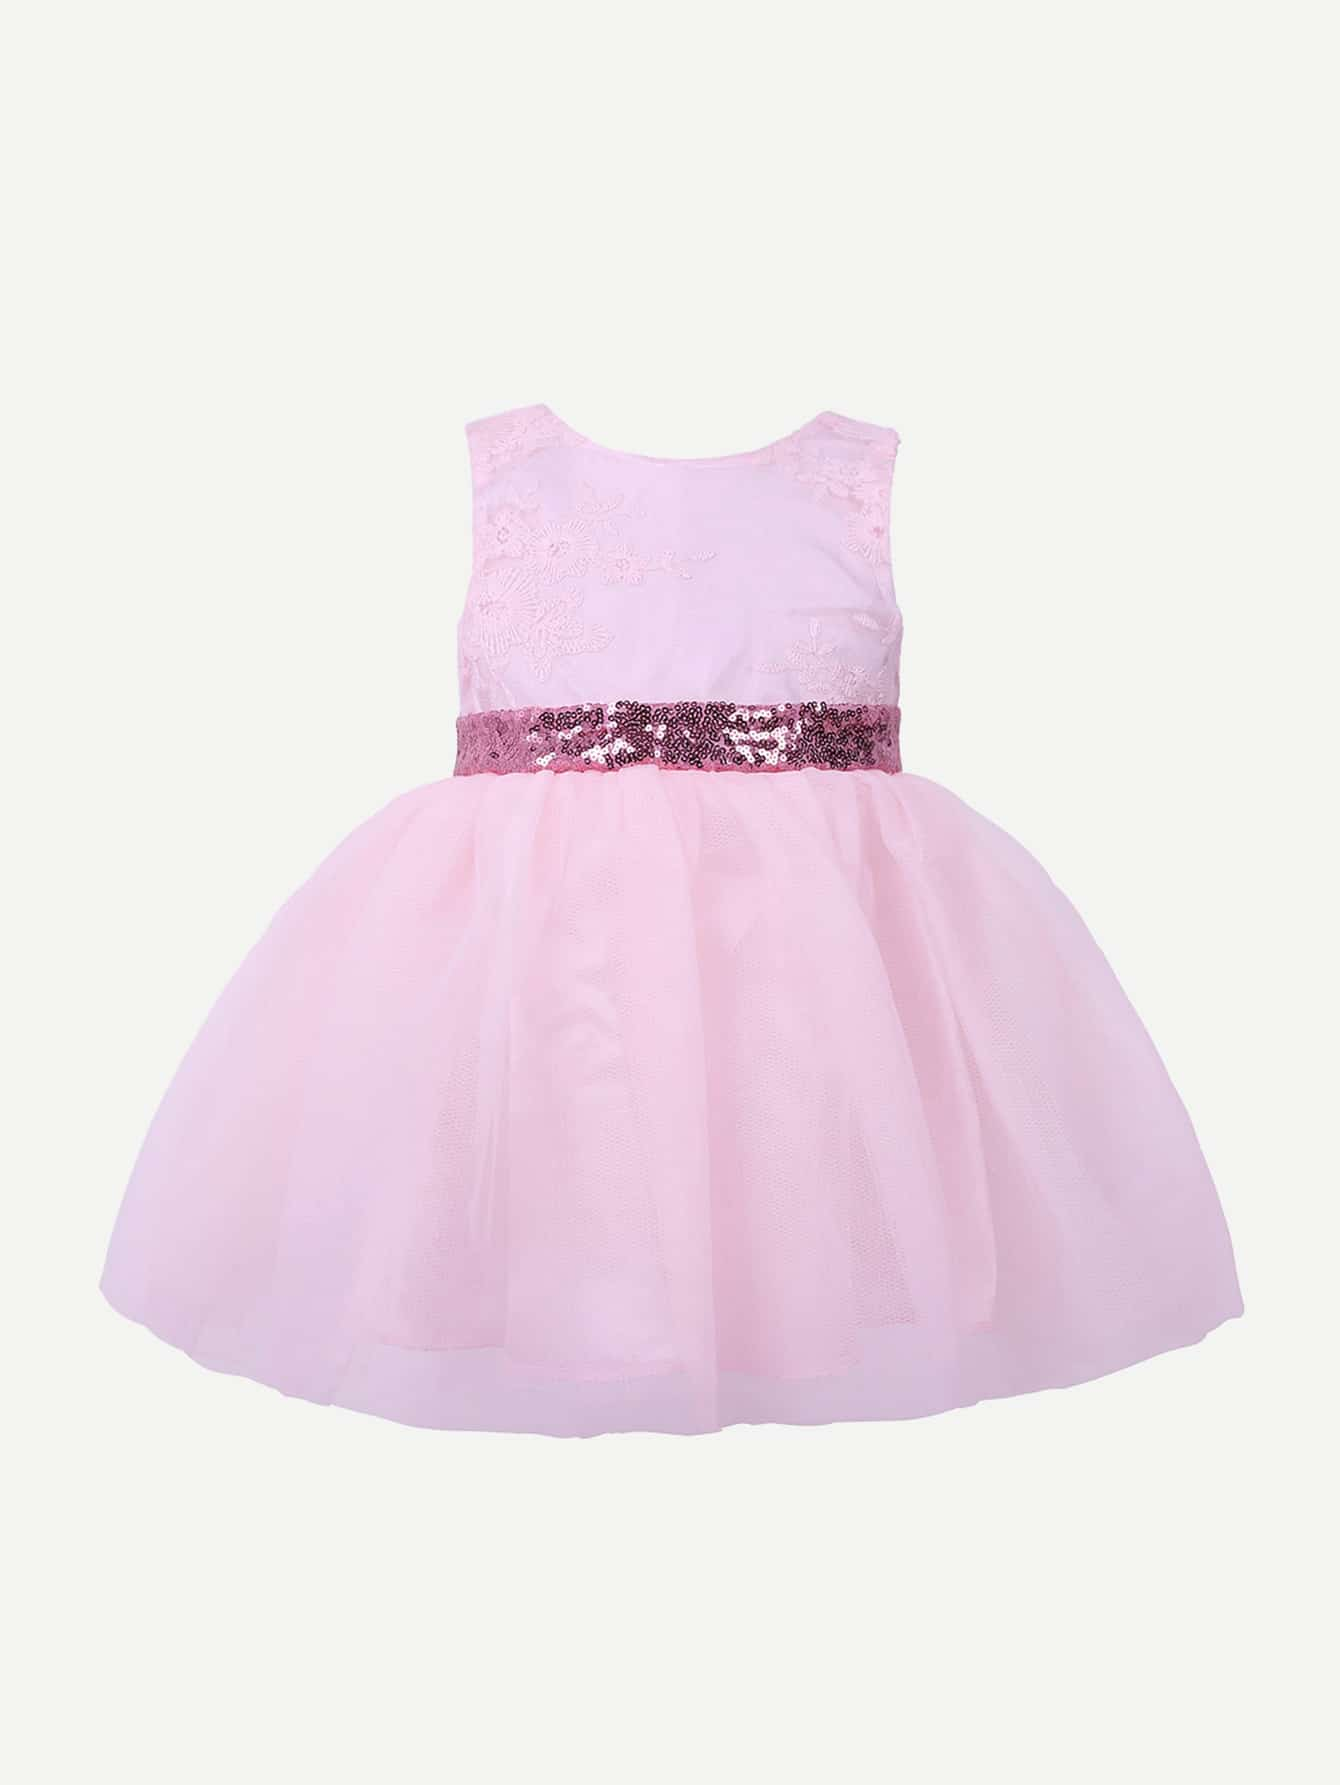 Girls Sequined Belt Bow Back Dress 2017 new cute golden sequined flower girl dresses baby little girls ball gowns dresses with big bow for one year birthday dress